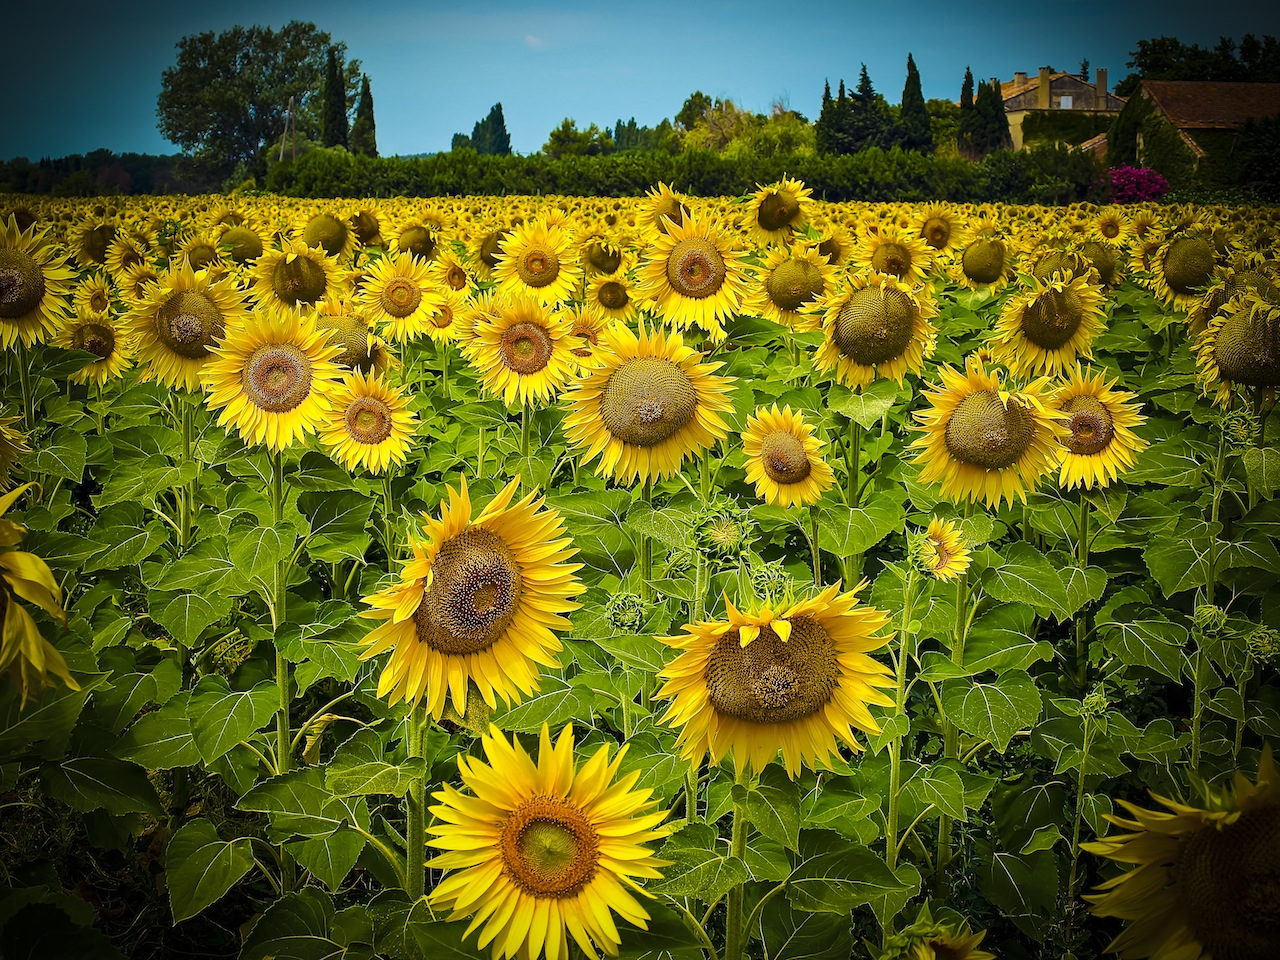 A field of sunflowers photographed on the Valensole Plains, Provence, France.